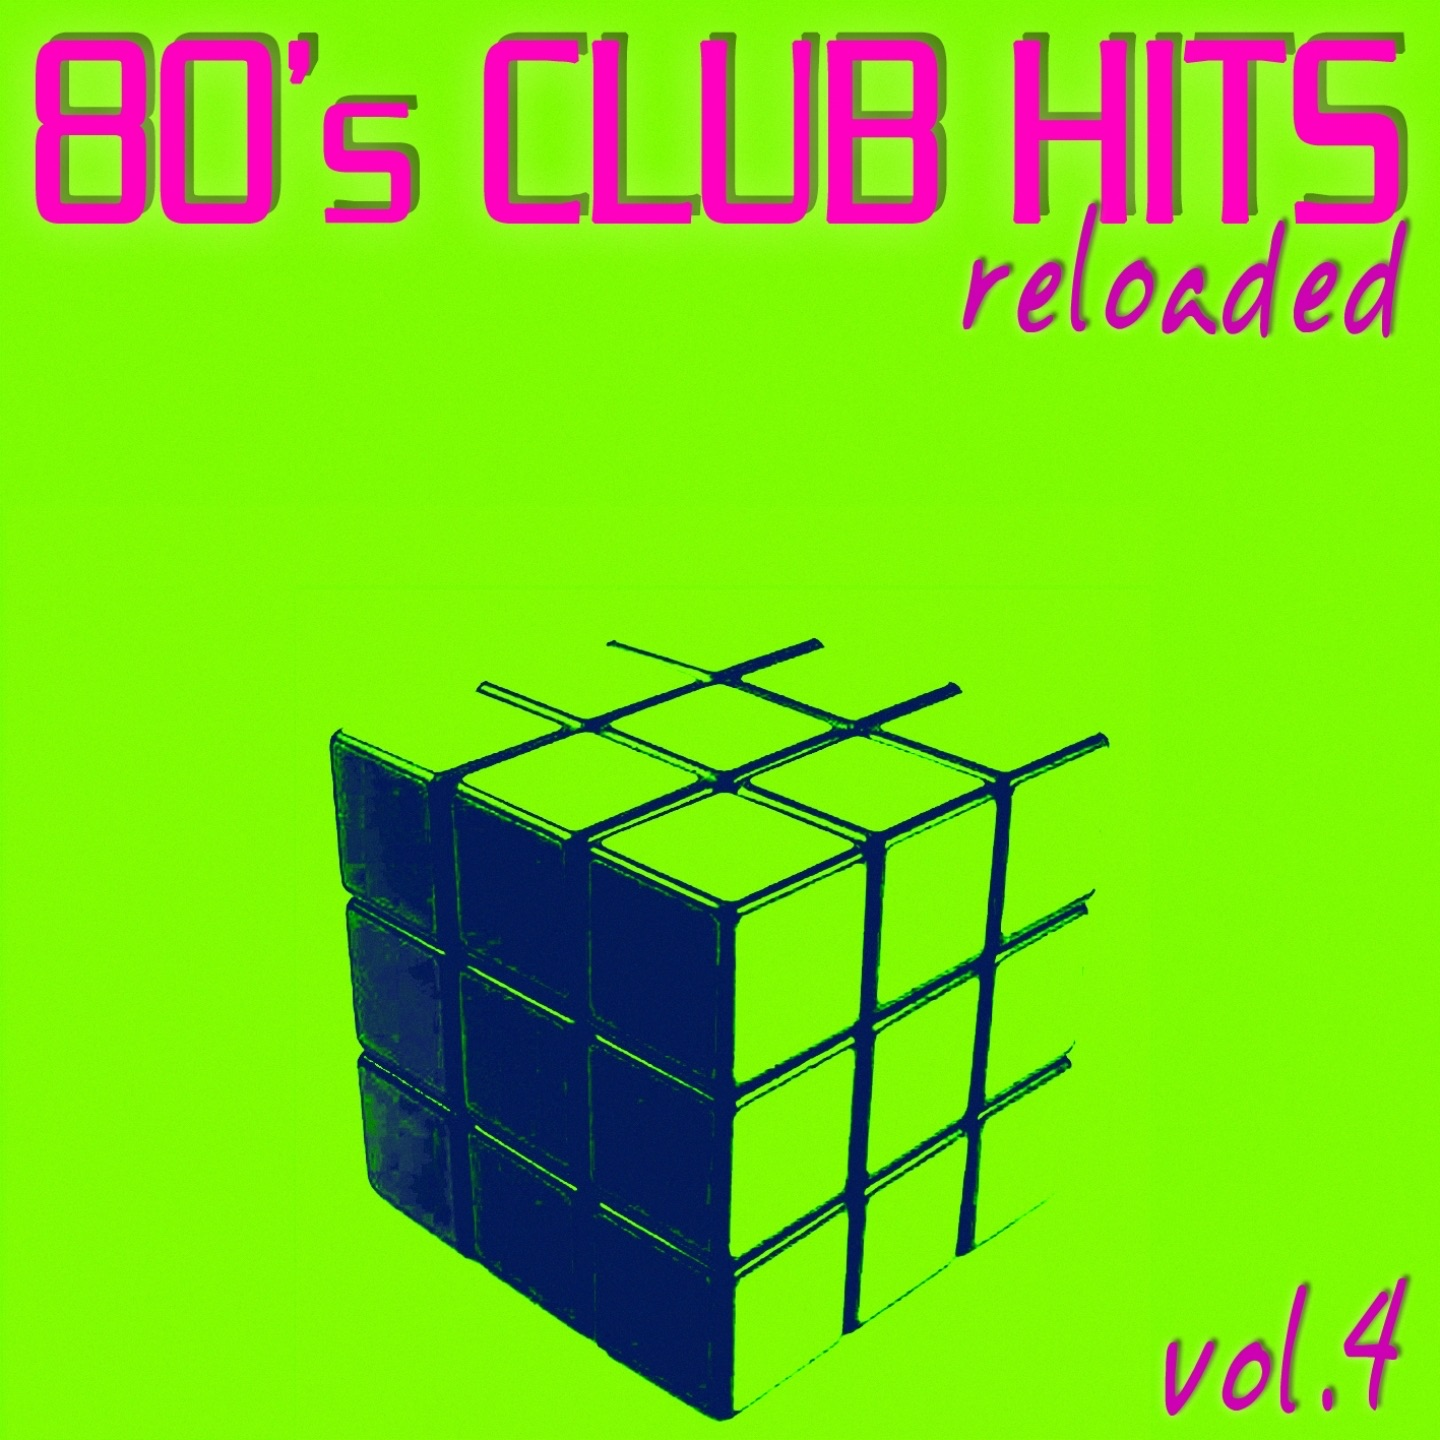 80 39 s club hits reloaded vol 4 best of club dance house Best 80s house remixes